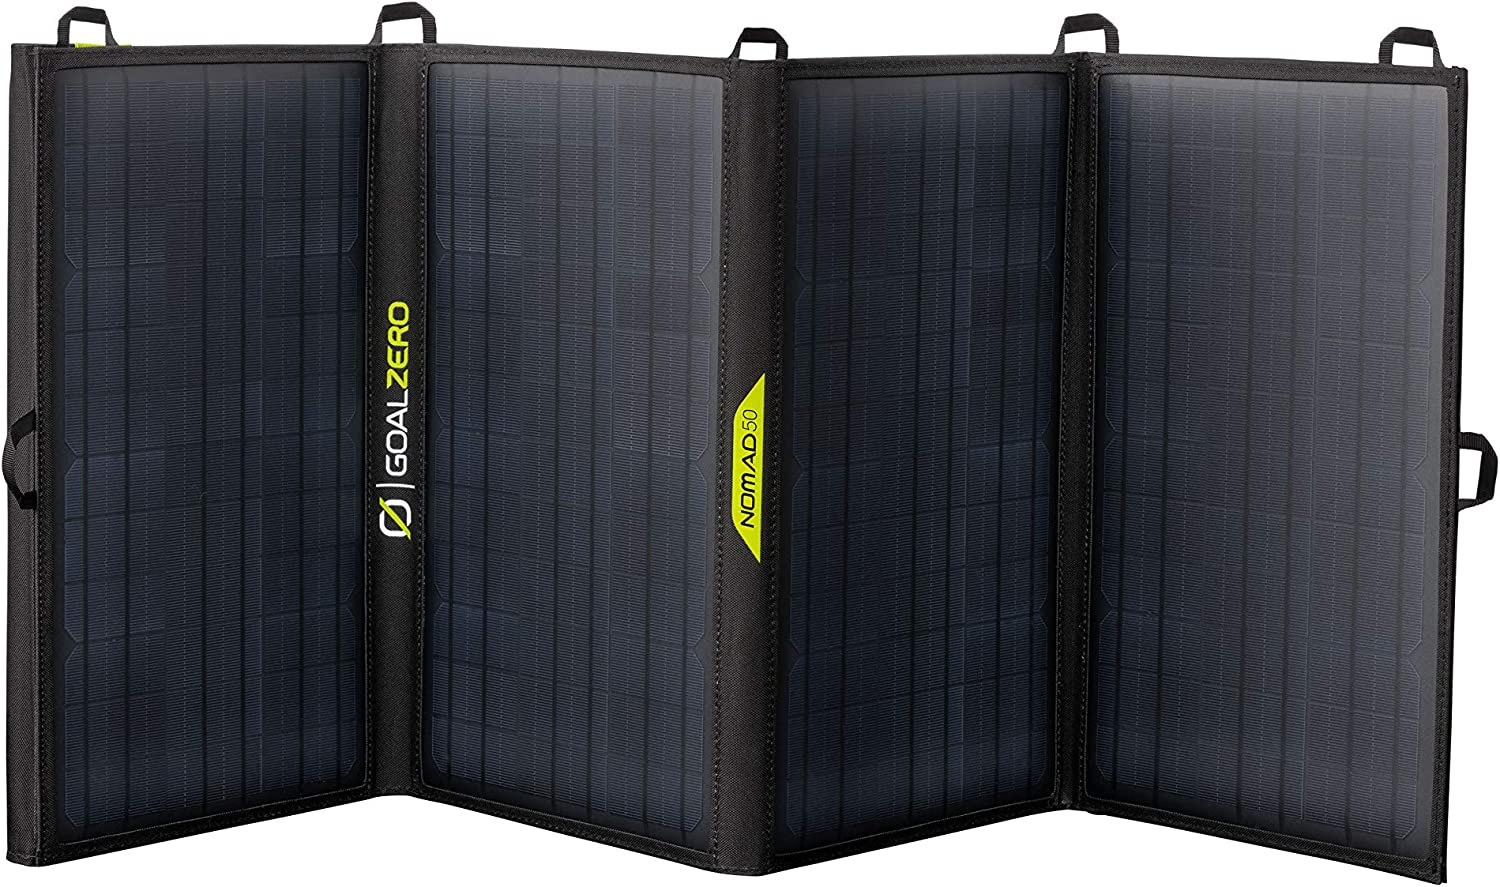 Goal Zero Nomad 50, Foldable Monocrystalline 50 Watt Solar Panel with 8mm + USB Port, Portable Solar Panel Charger for Yeti Power Generator and Banks. Lightweight 18-22V 50W Solar Panel Charger